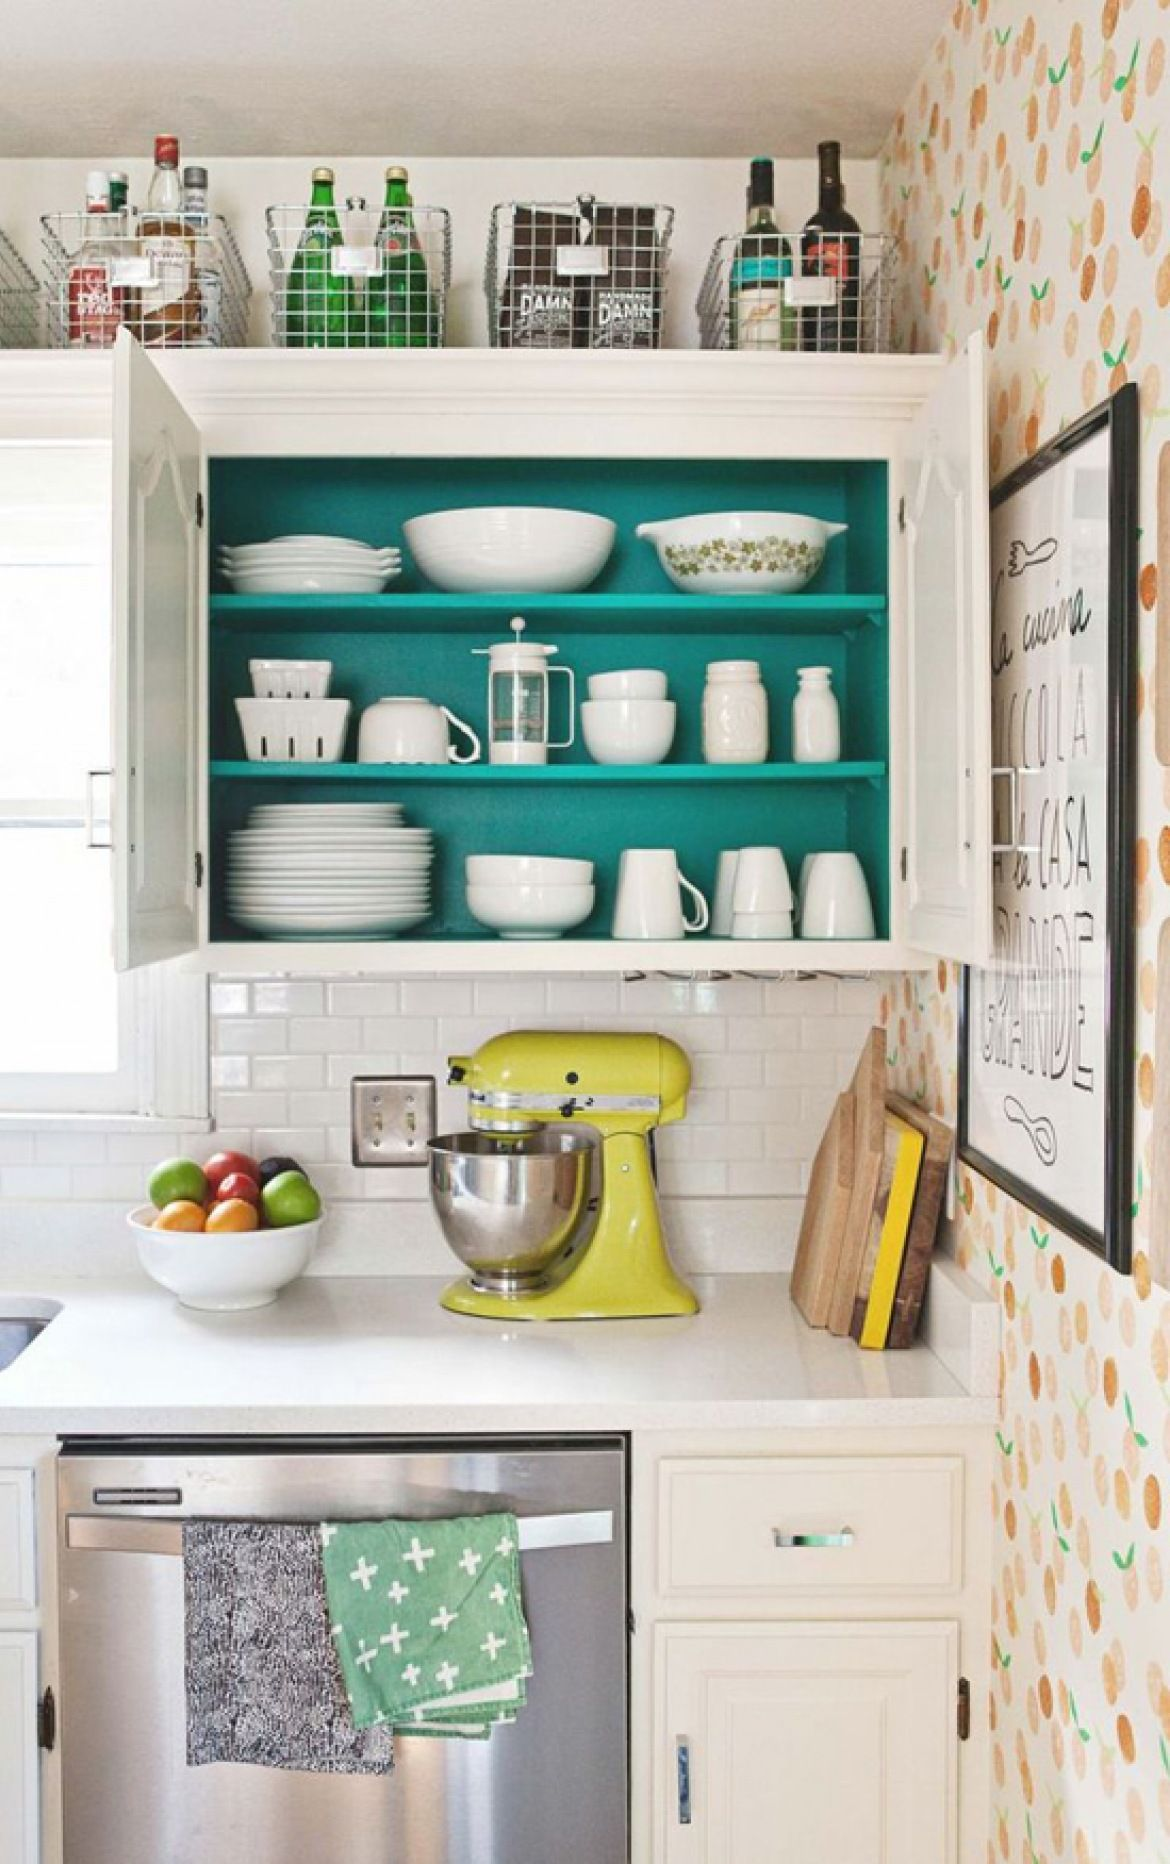 Maximizing-cabinet-top-2 80+ Unusual Kitchen Design Ideas for Small Spaces in 2021